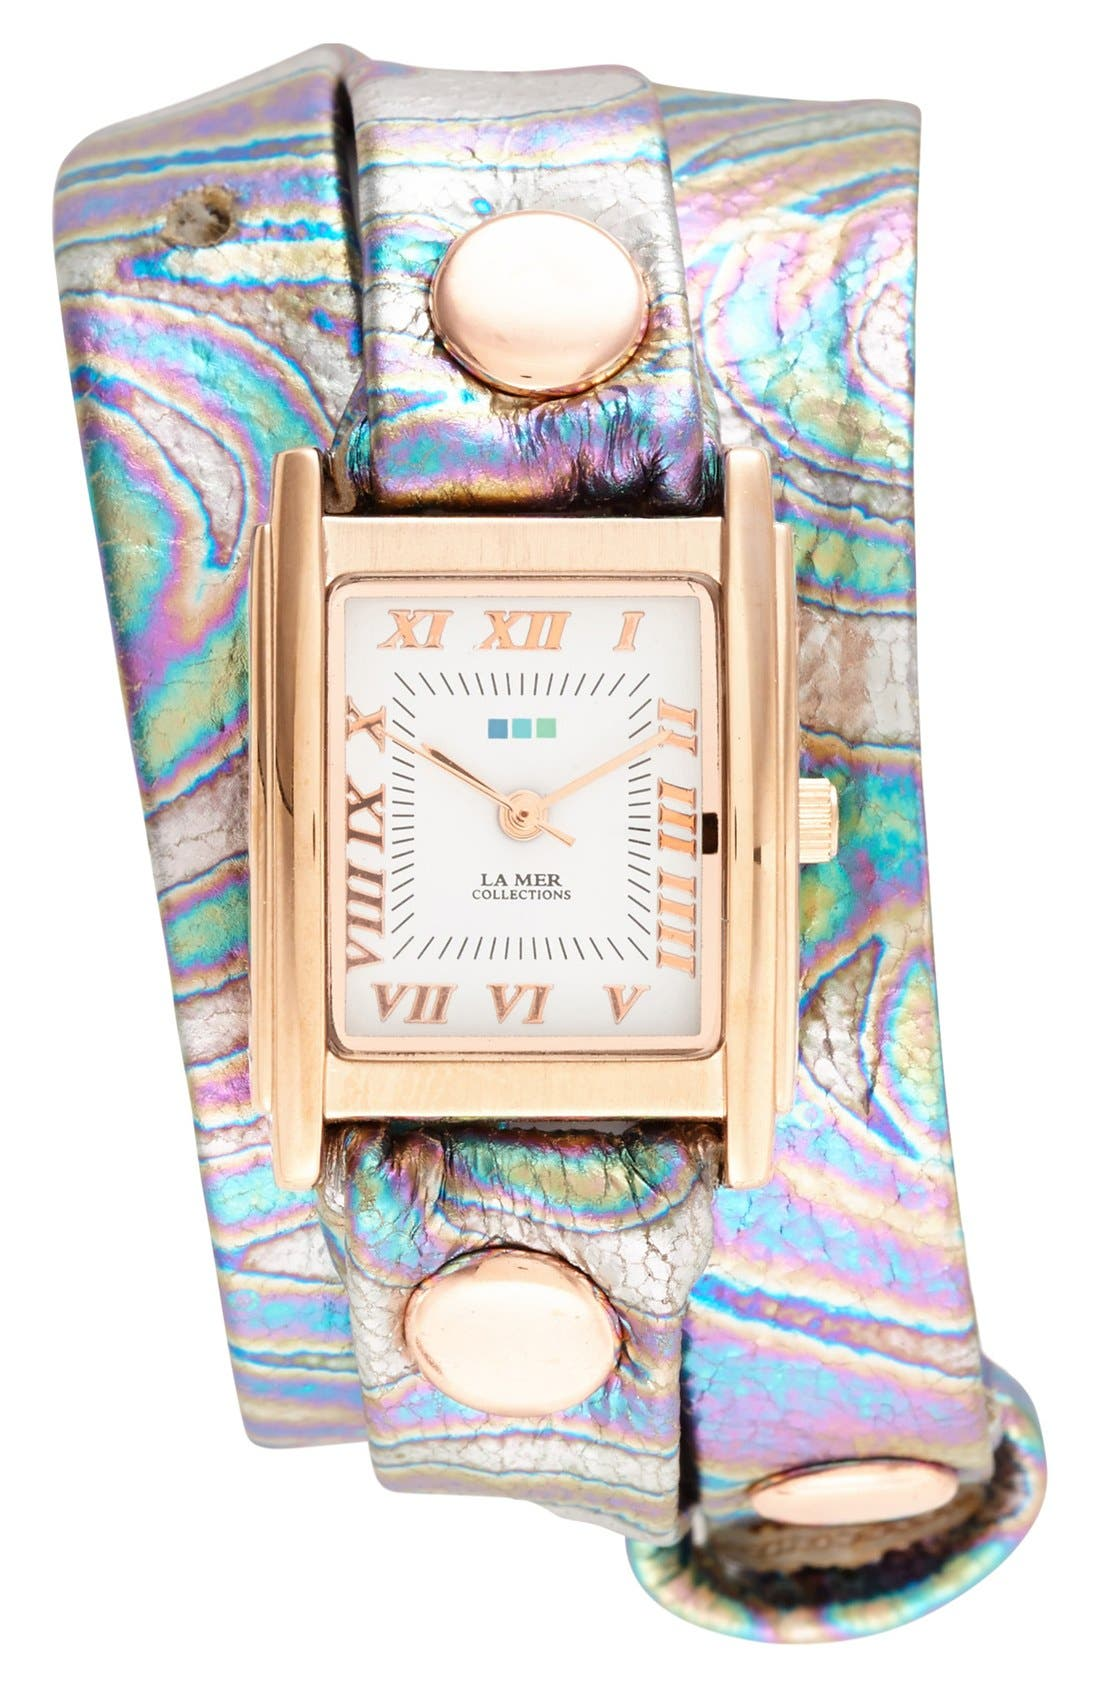 Alternate Image 1 Selected - La Mer Collections 'Oil Spill' Square Wrap Watch, 22mm